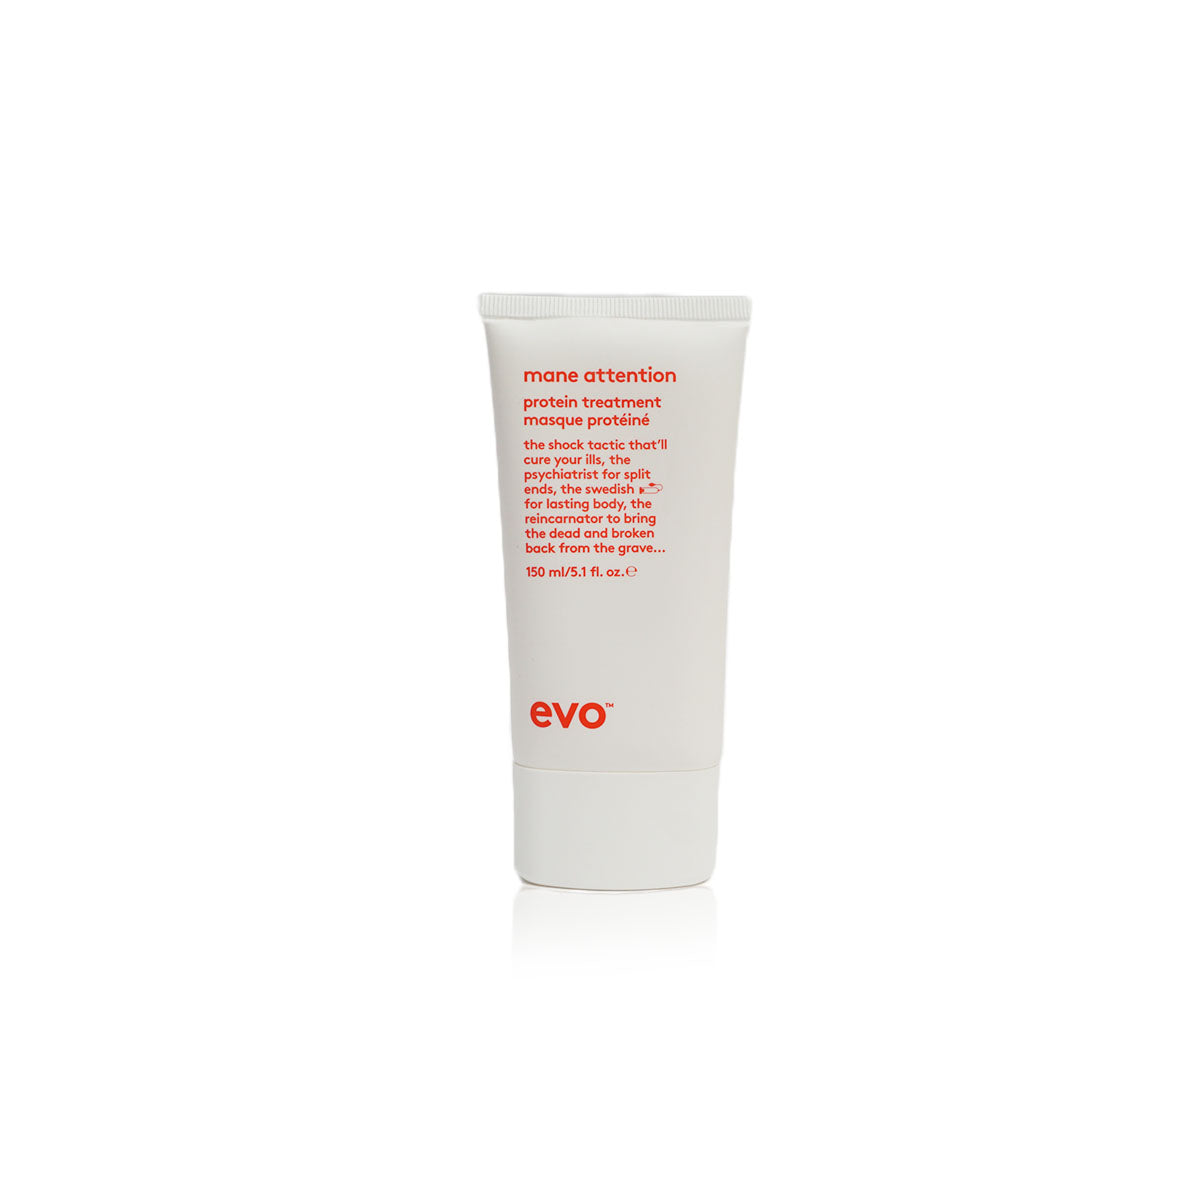 Evo mane attention protein treatment, best for brittle chemically treated hair - Case of 3 bottles 150ml / 5.1fl.oz (New)